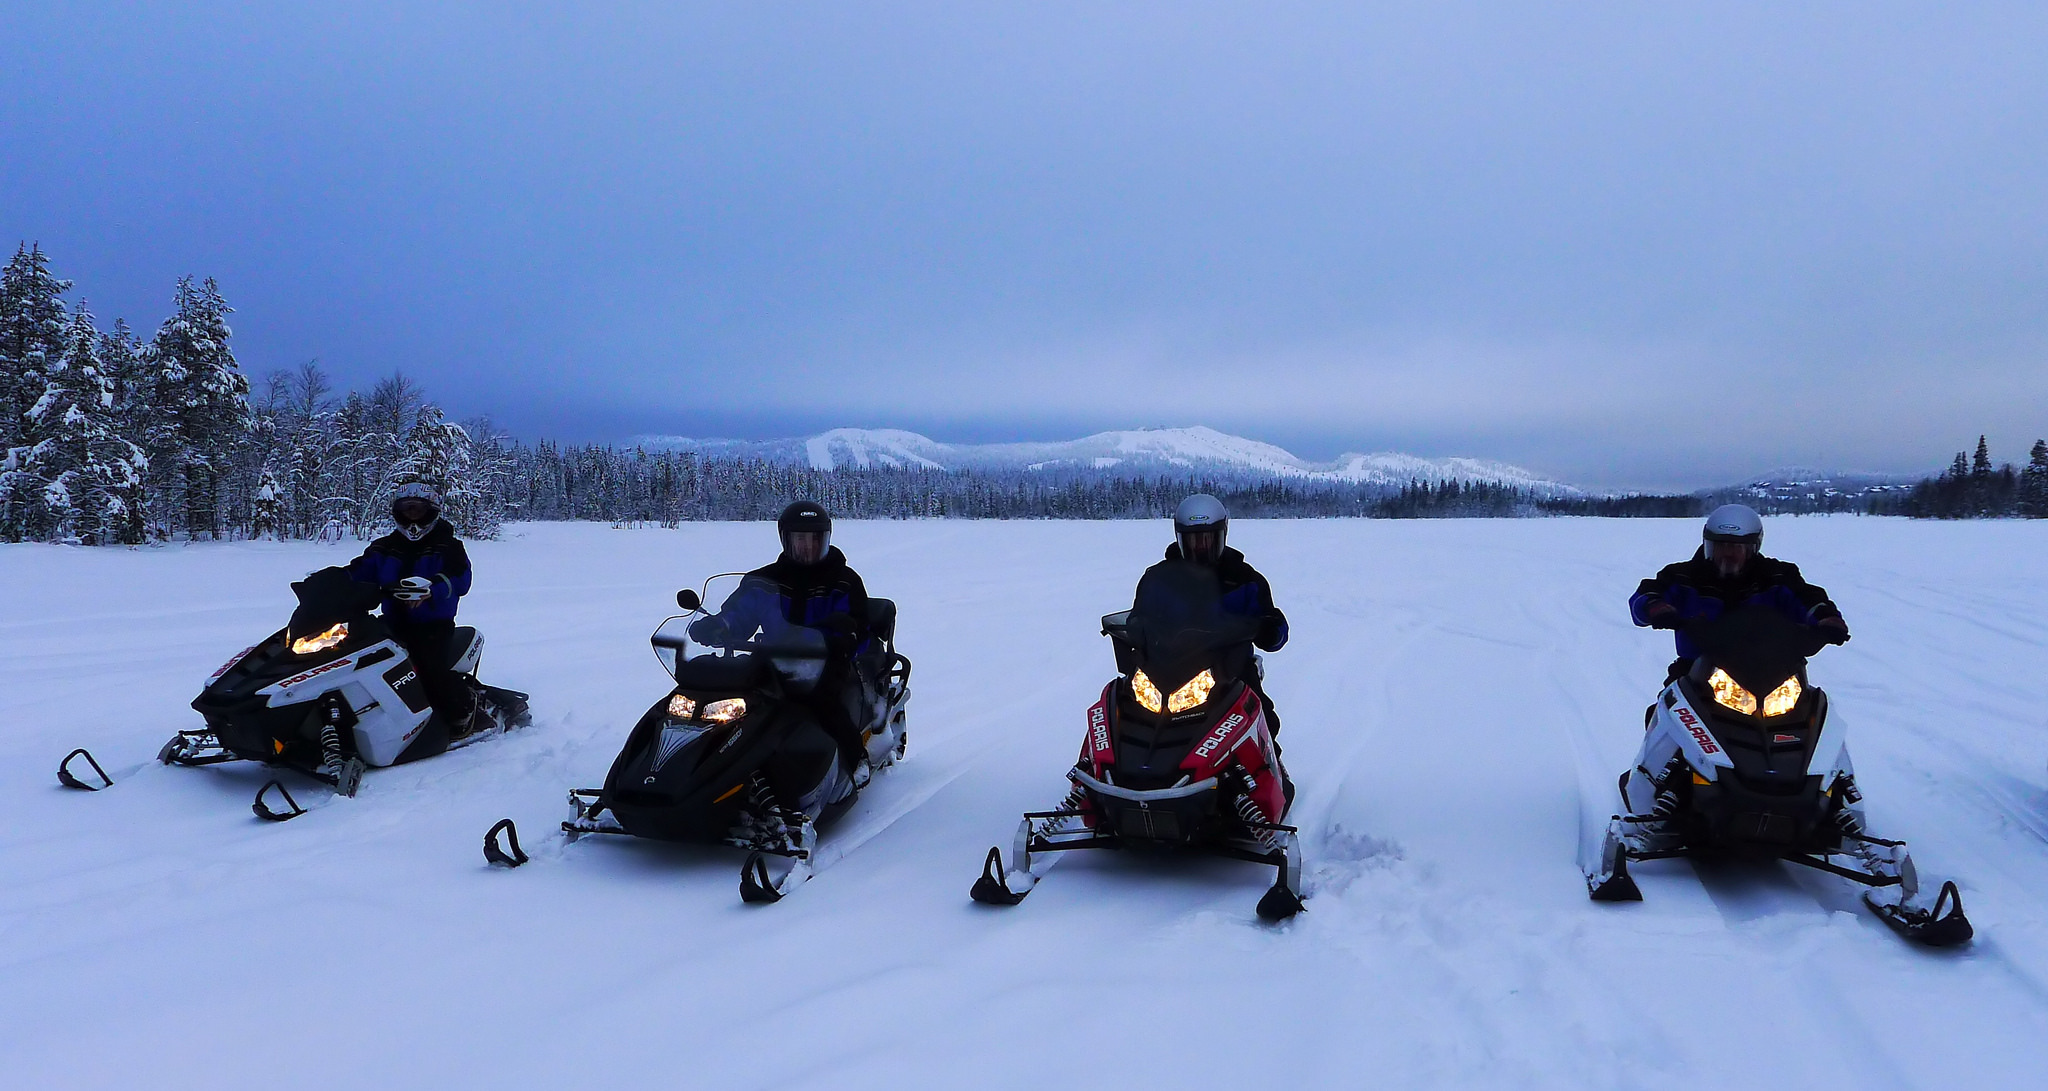 Snowmobiling in the mountains